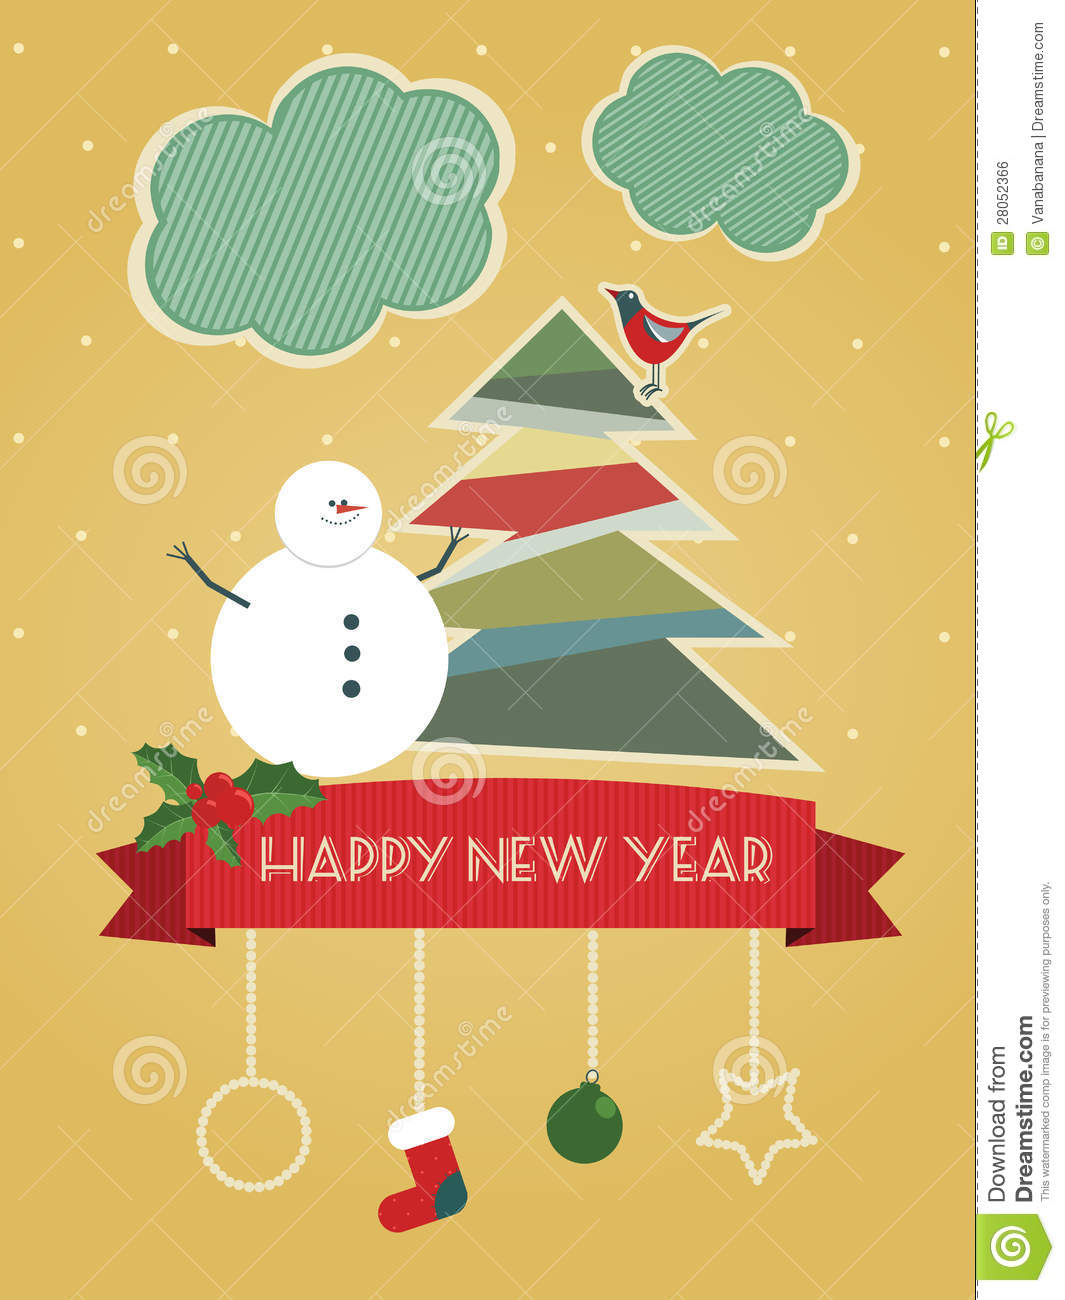 Vintage Happy New Year Postcard Royalty Free Stock Image - Image ...